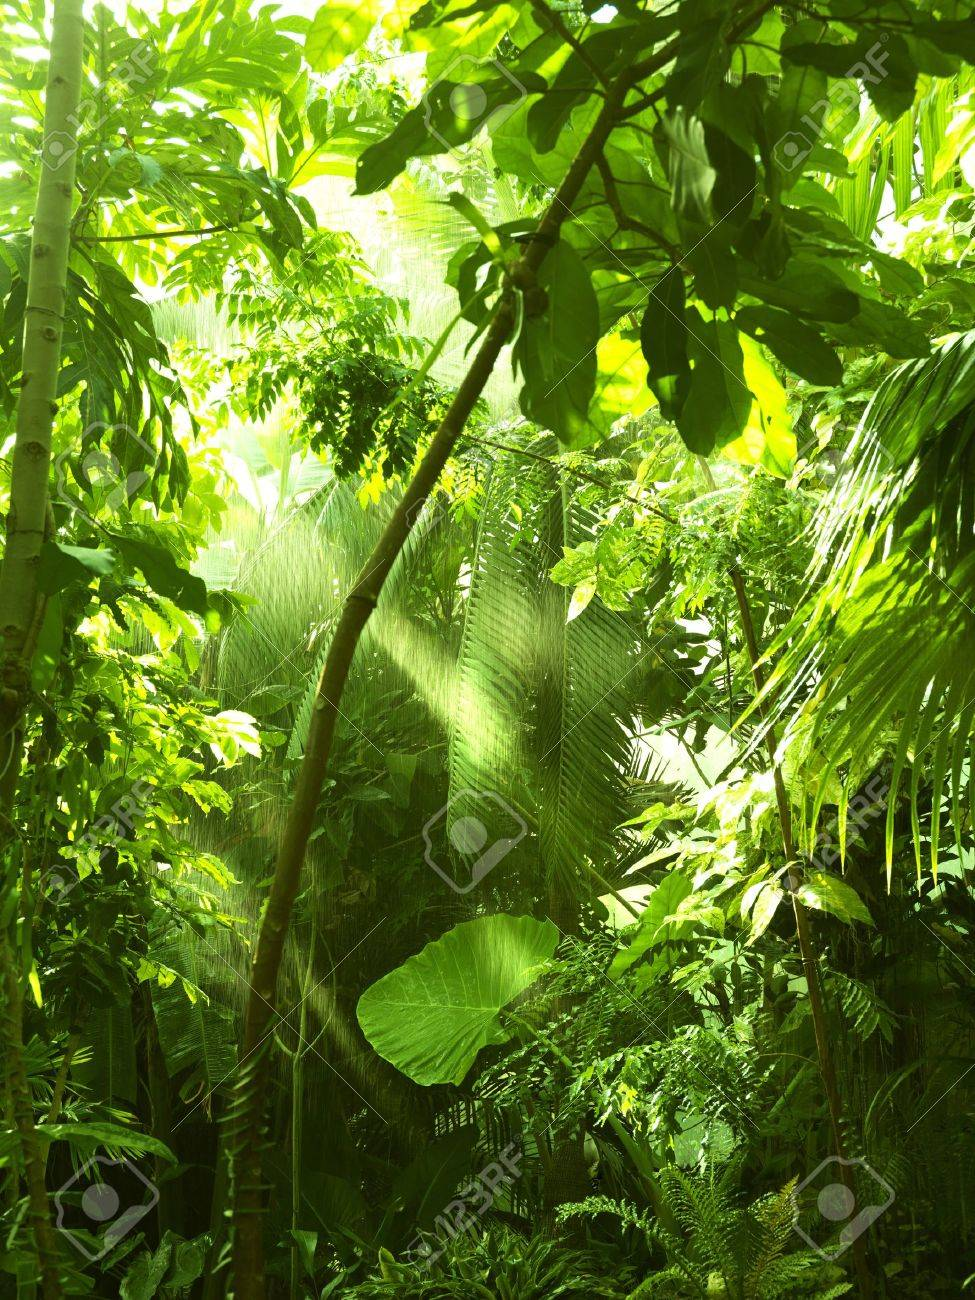 Tropical forest, trees in sunlight and rain Stock Photo - 15206075